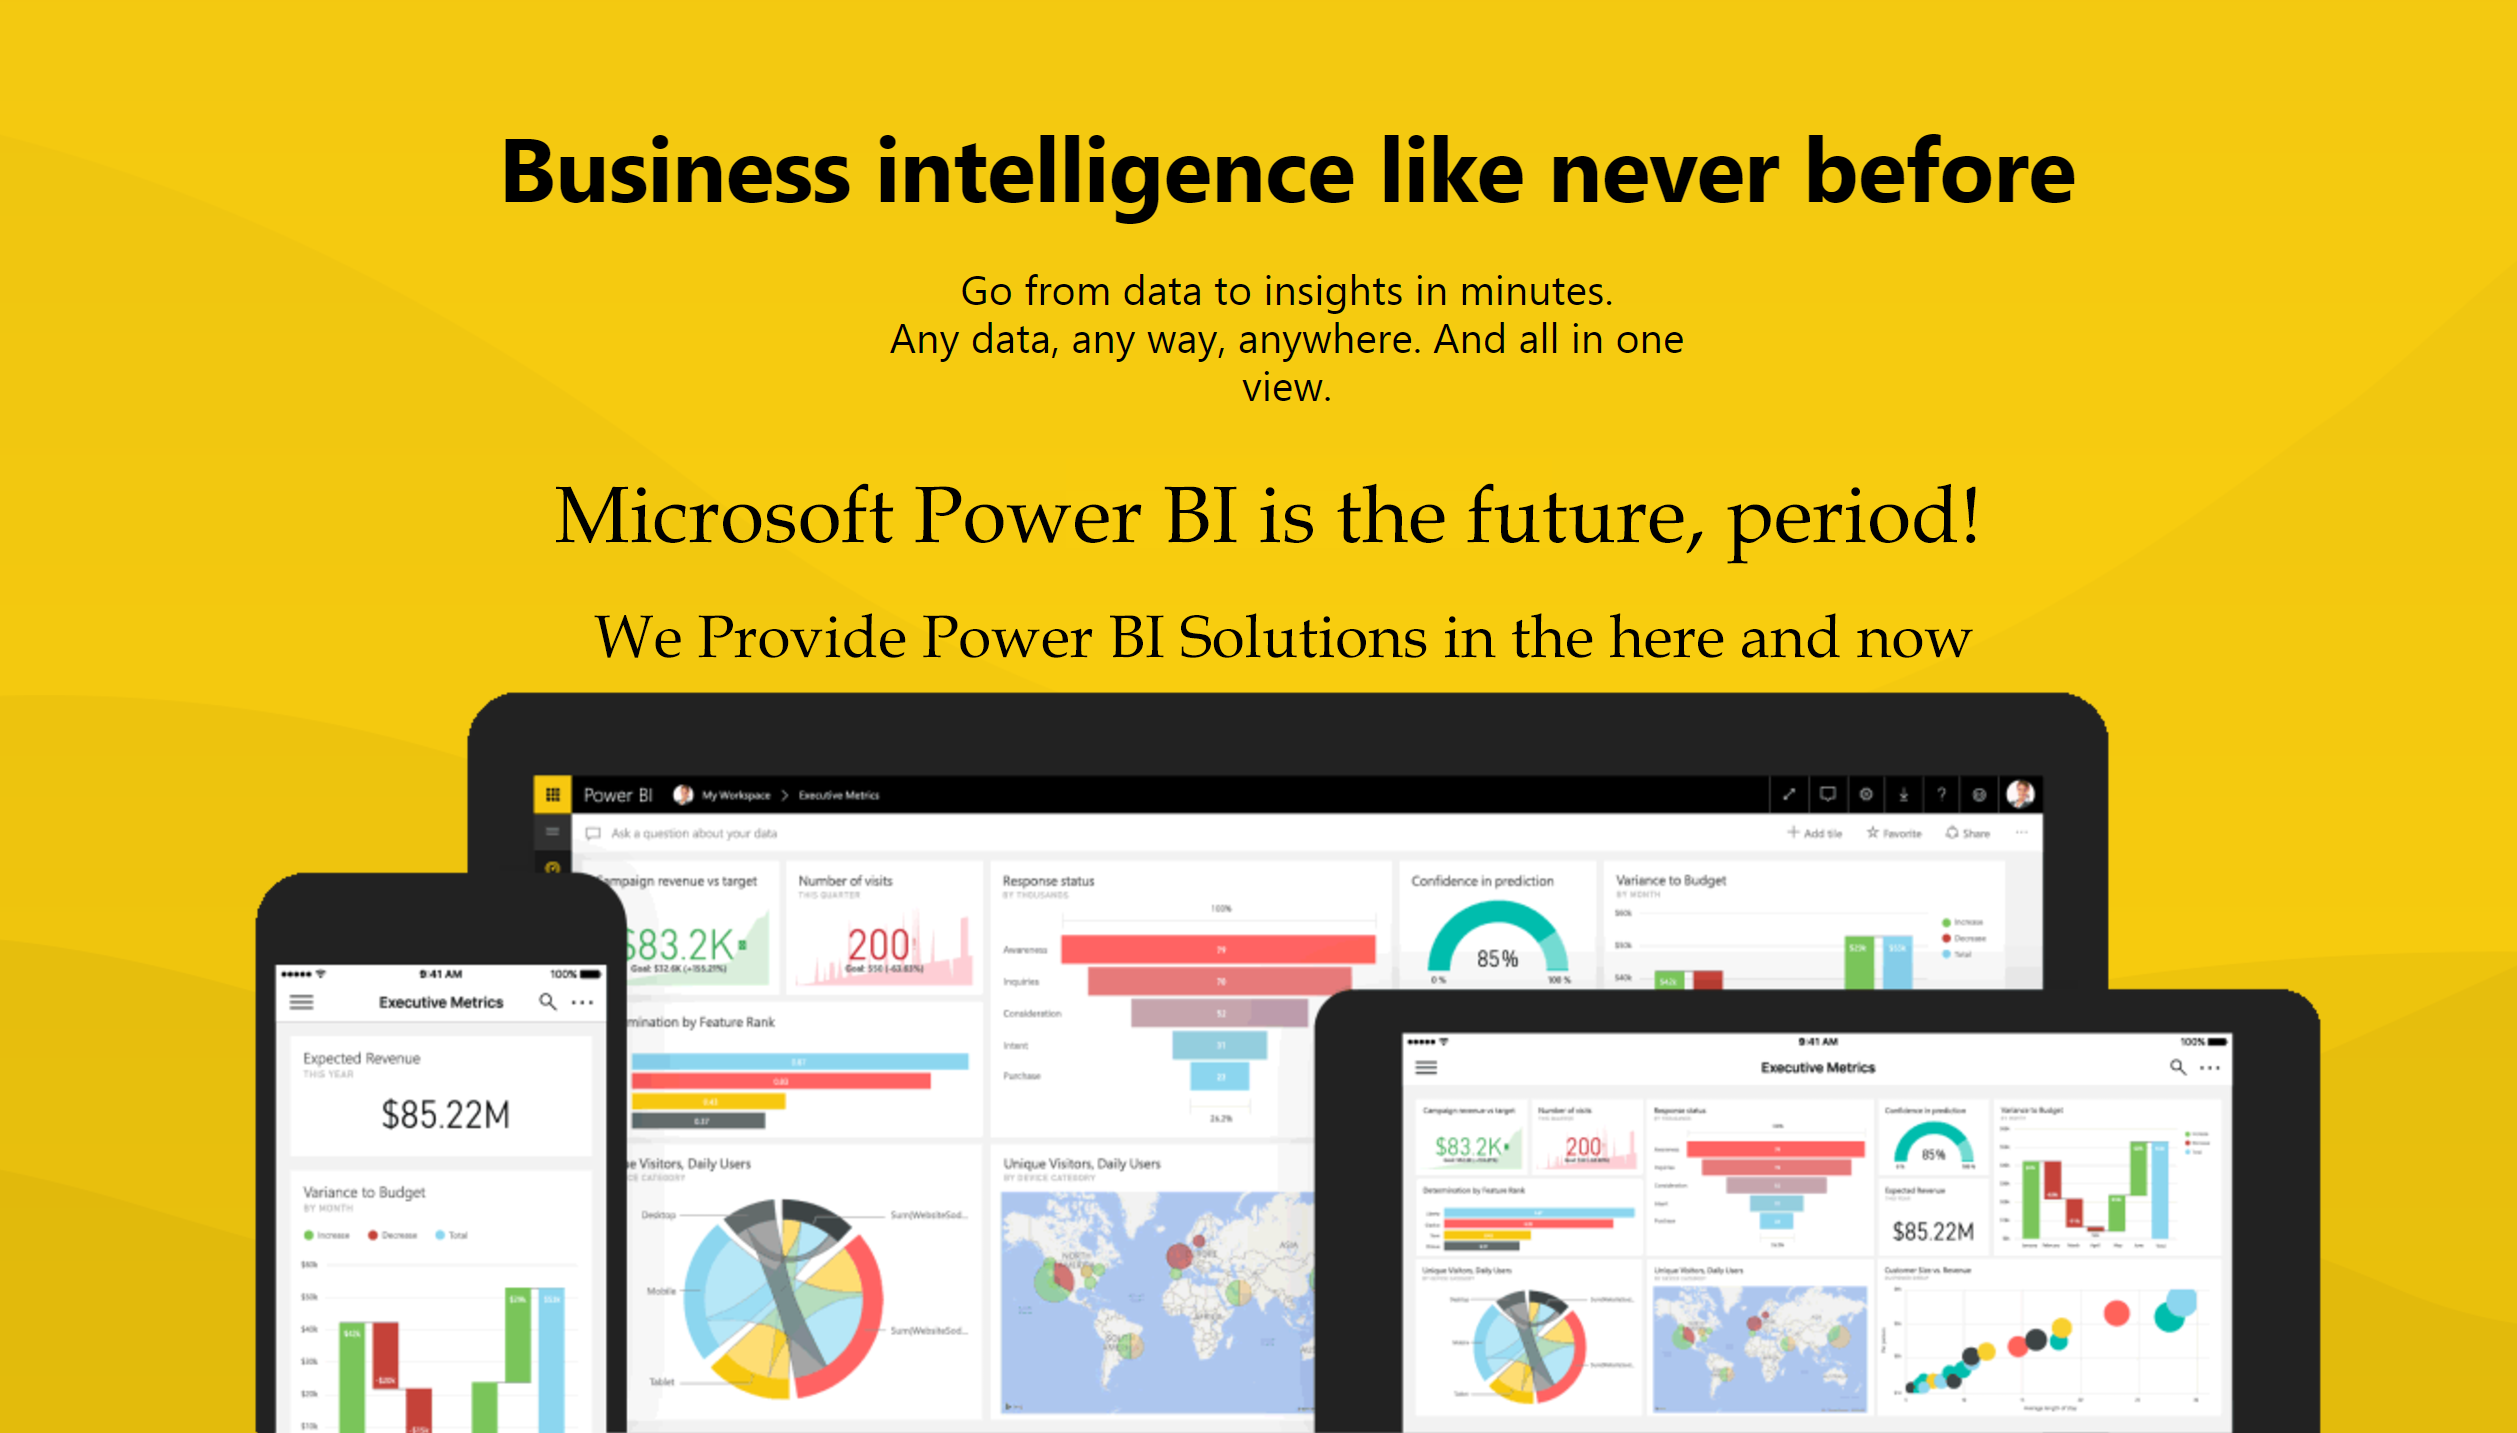 The Future - Microsoft Power BI